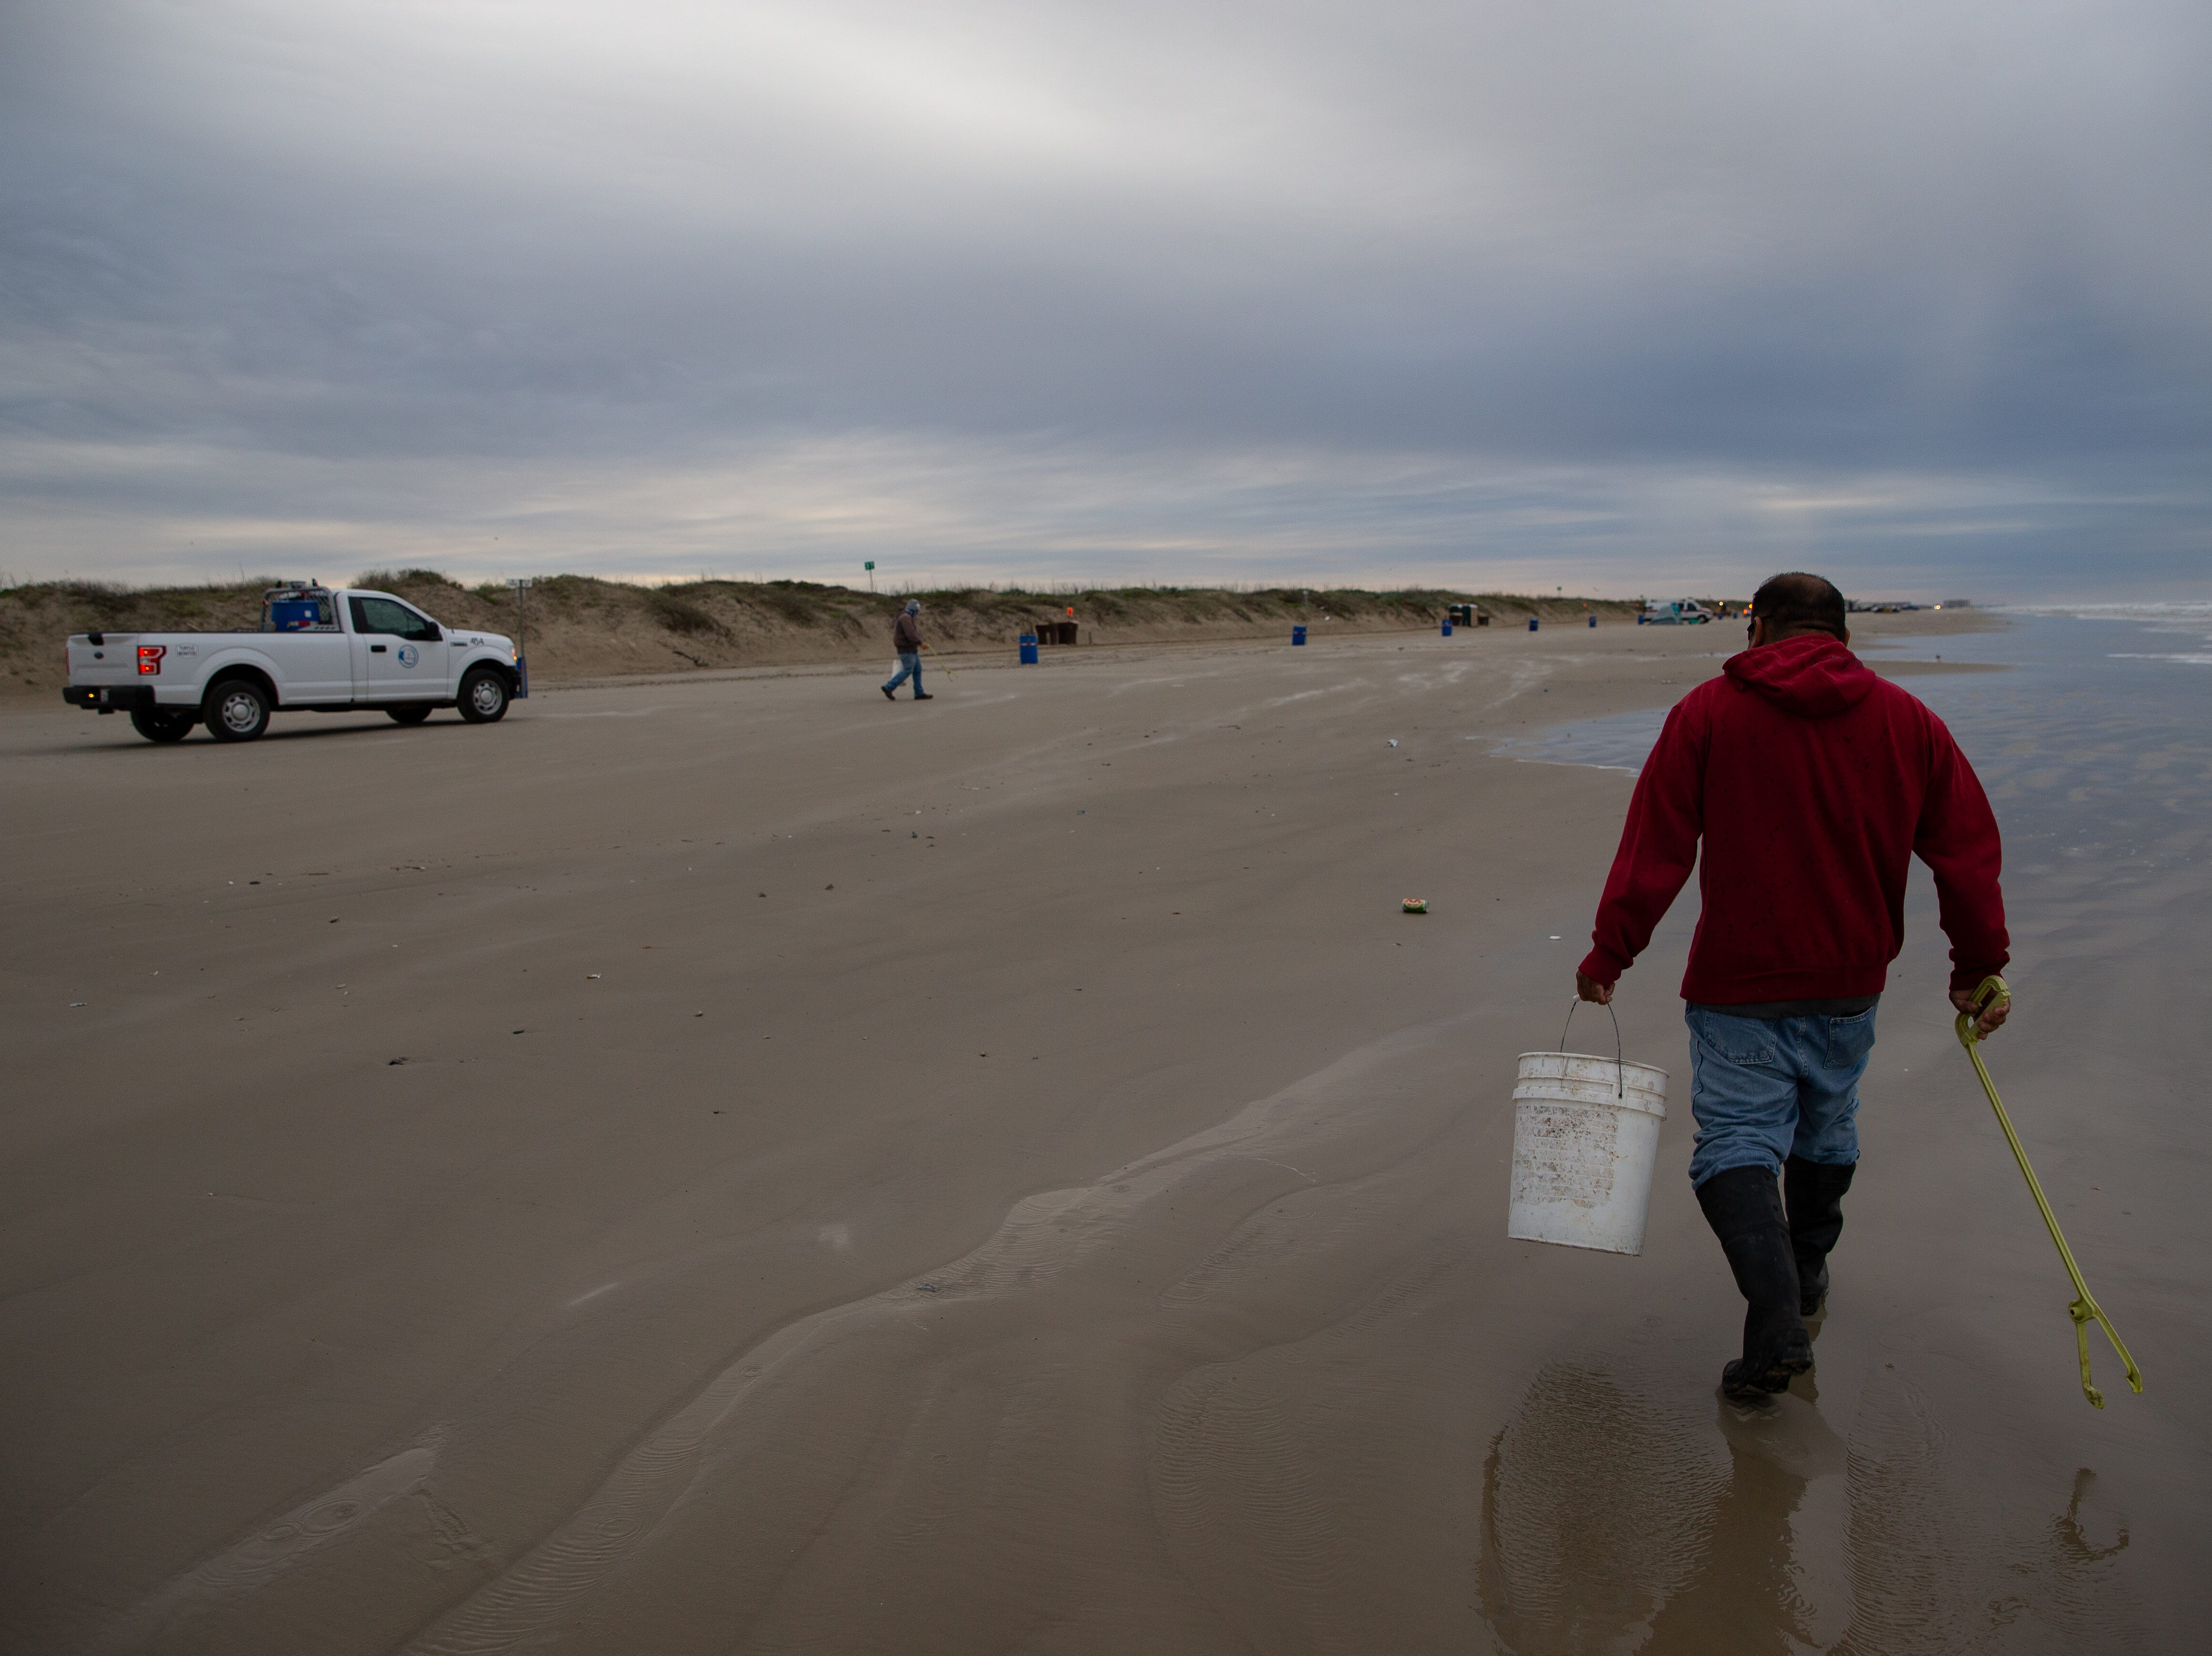 Port Aransas sanitation workers in the early morning collecting trash left on the beach from the bay before during the week of spring break on Friday, March 15, 2019.